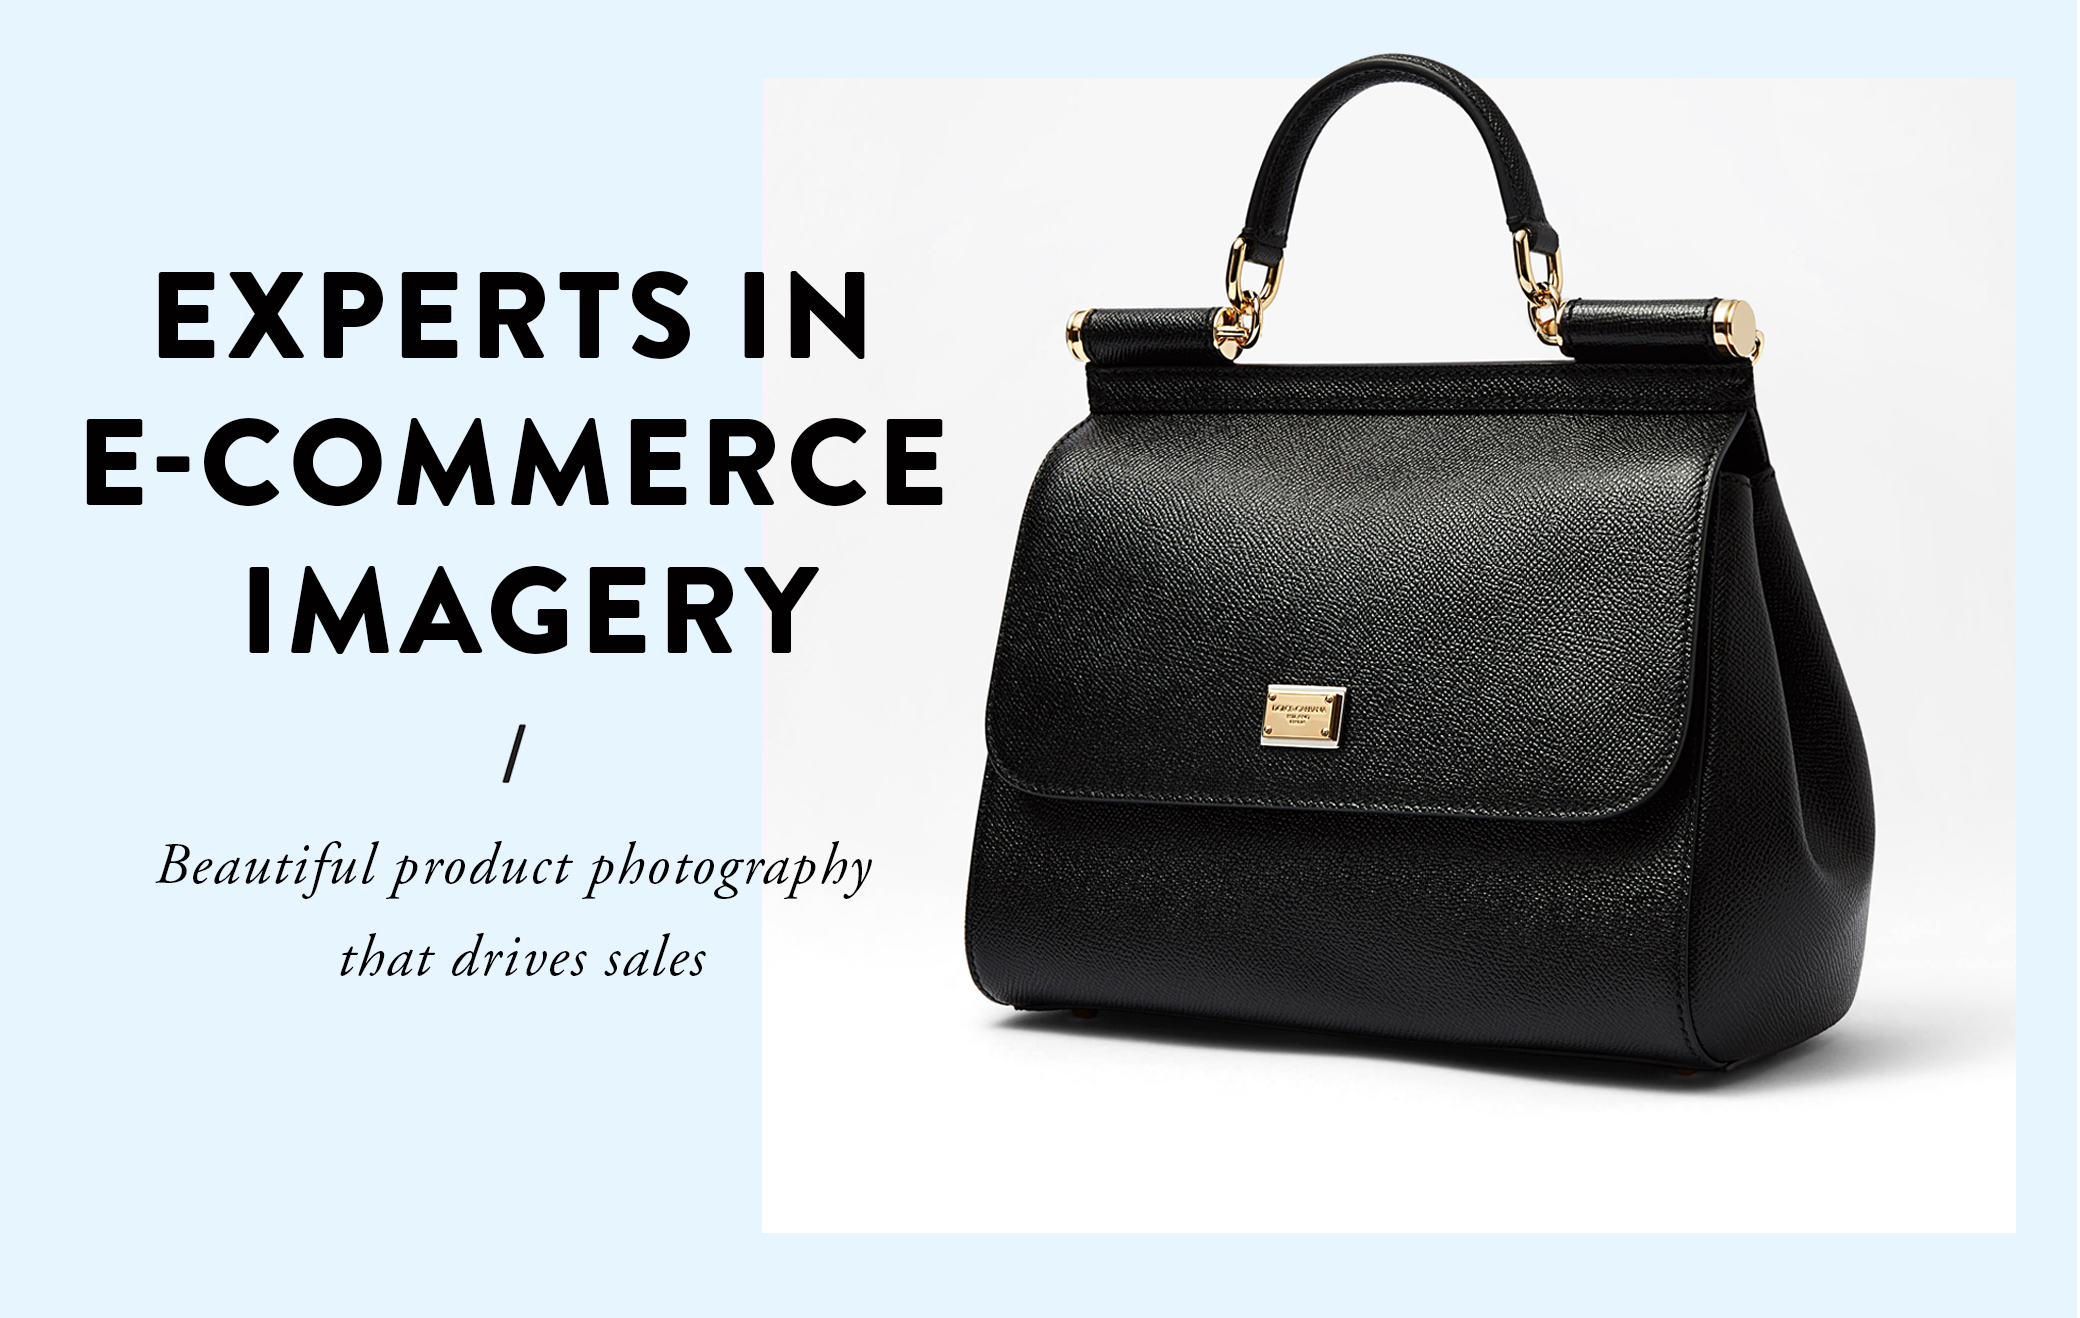 experts in e-commerce imagery, dolce gabbana handbag product photography